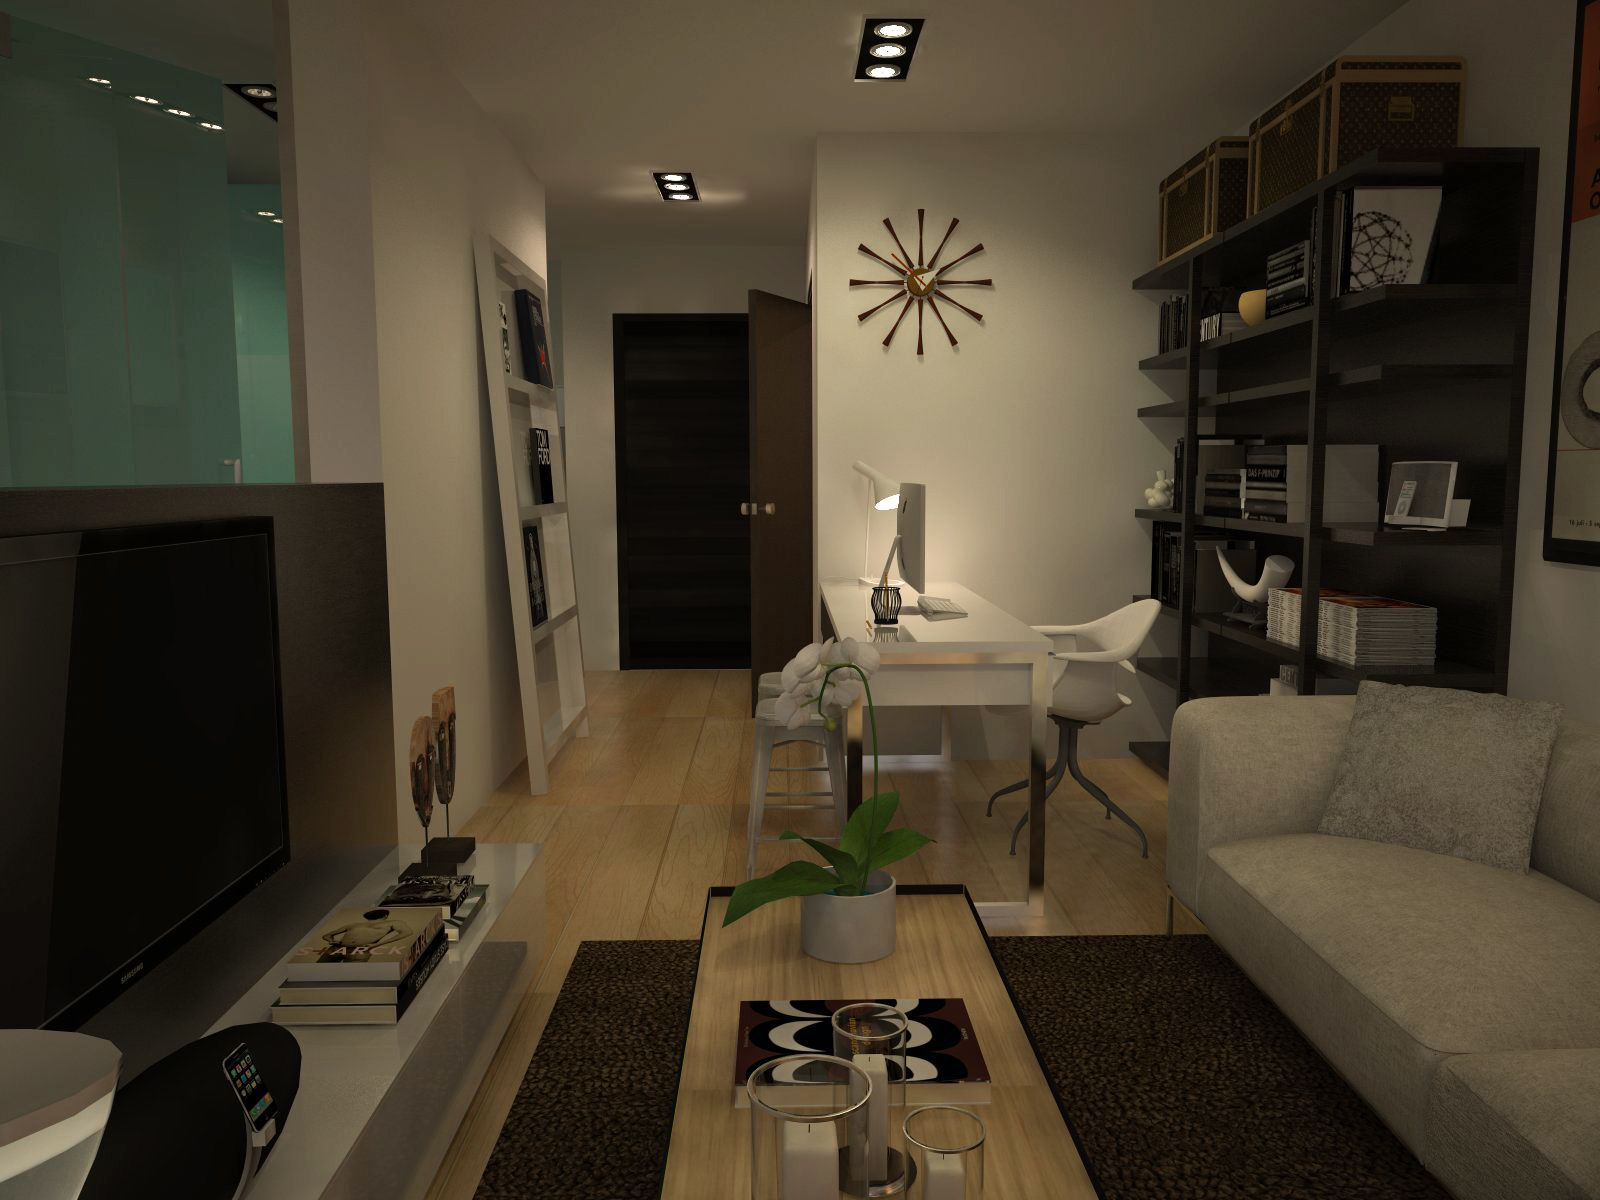 Hdb Bto For Singles 2 Room 47sqm Apartment In Sengkang Rieverview Walk Interior Design By The Owner Of This Magazine